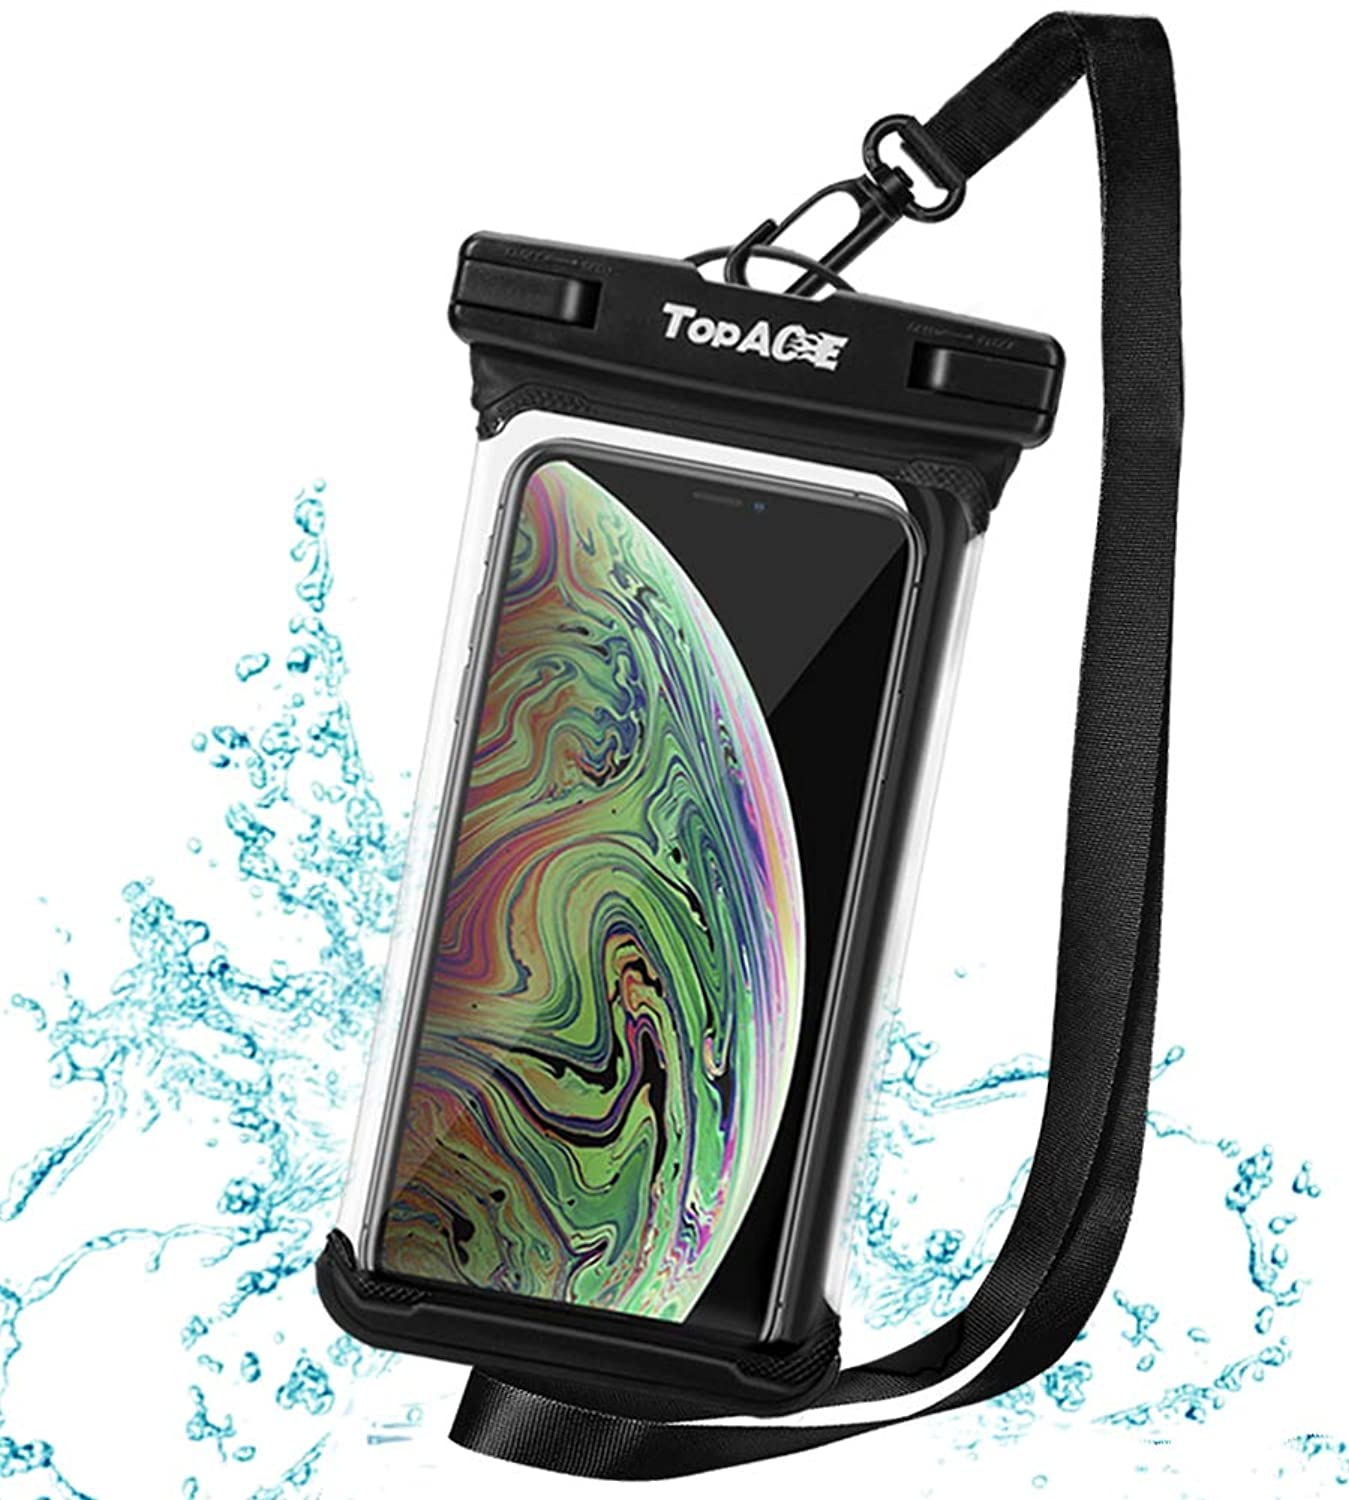 TOPACE 防水ケース スマホ用 防水携帯ケース 「顔認証 」 6.5インチ以下 iPhone XR/iPhone XS/SONY XPERIA 1 / Google Pixel 3 lite XL/Huawei P30 Pro Android等対応 IPX8防水規格 TPU素材採用 水中撮影 お風呂 海水浴 (ブラック)